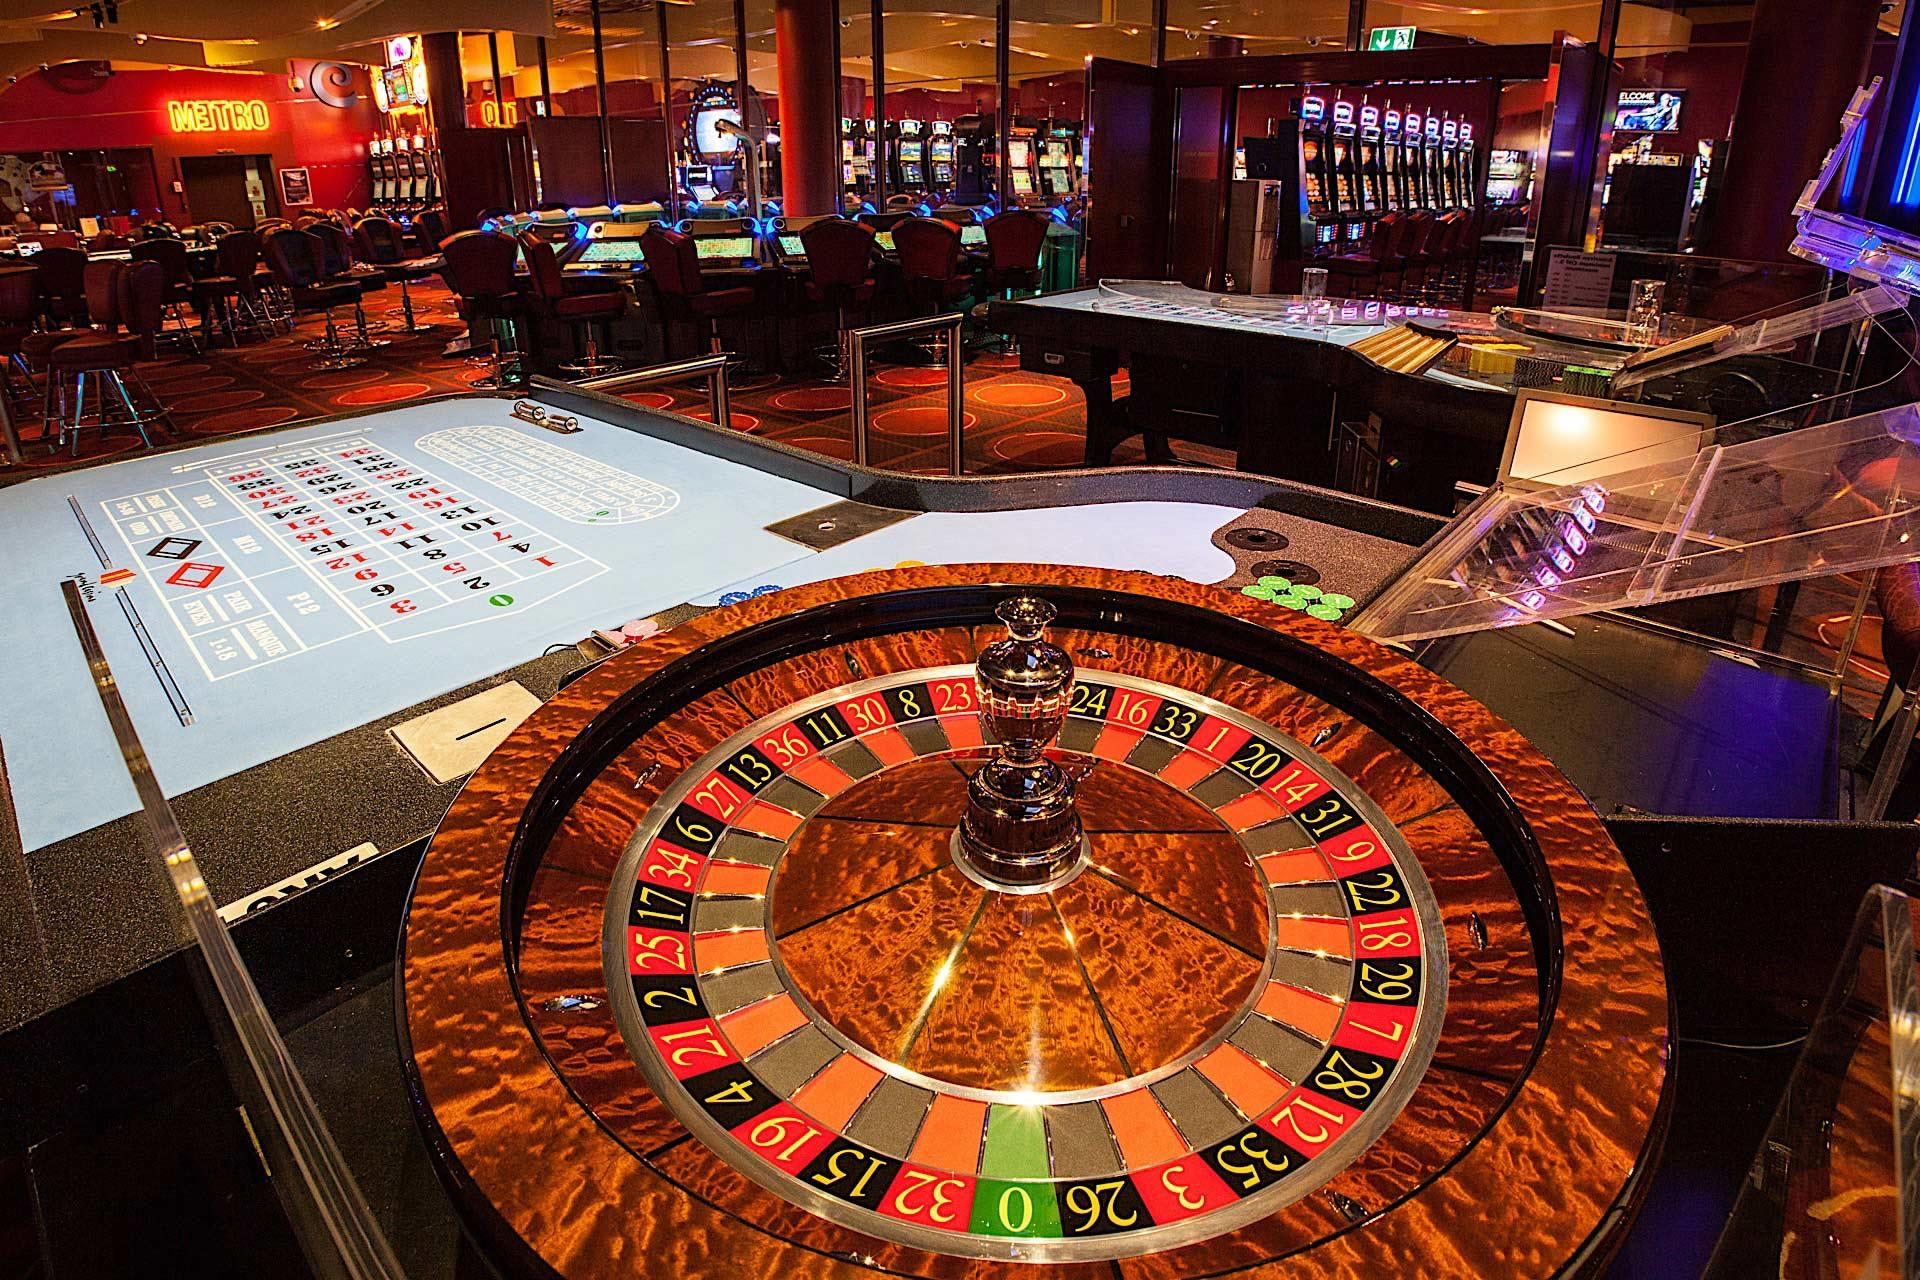 Roulette View at Airport Hotel Basel